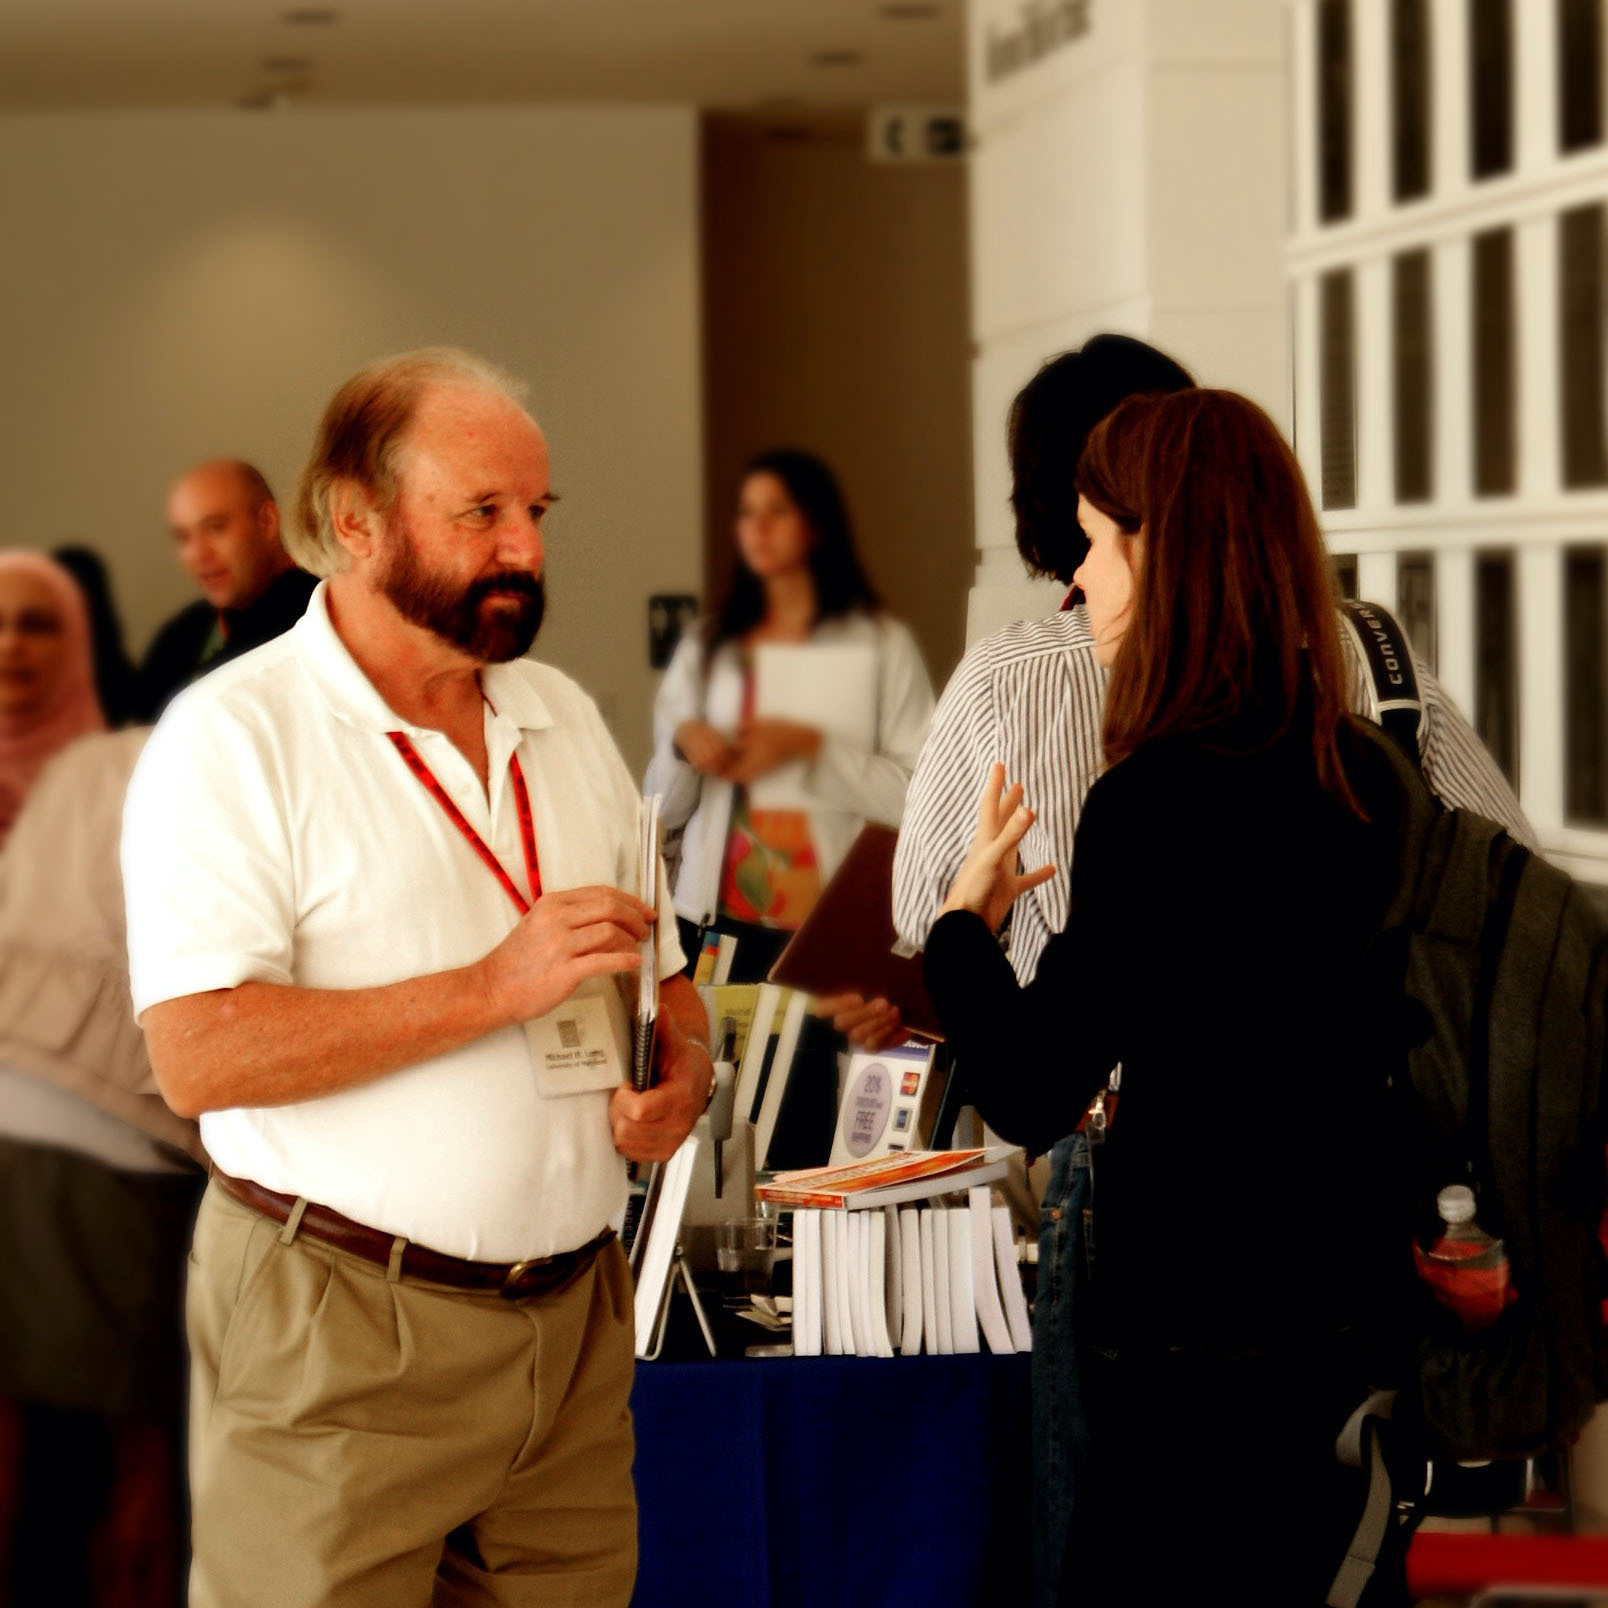 Mike long talking with someone at the Second Language Research Forum conference in 2010